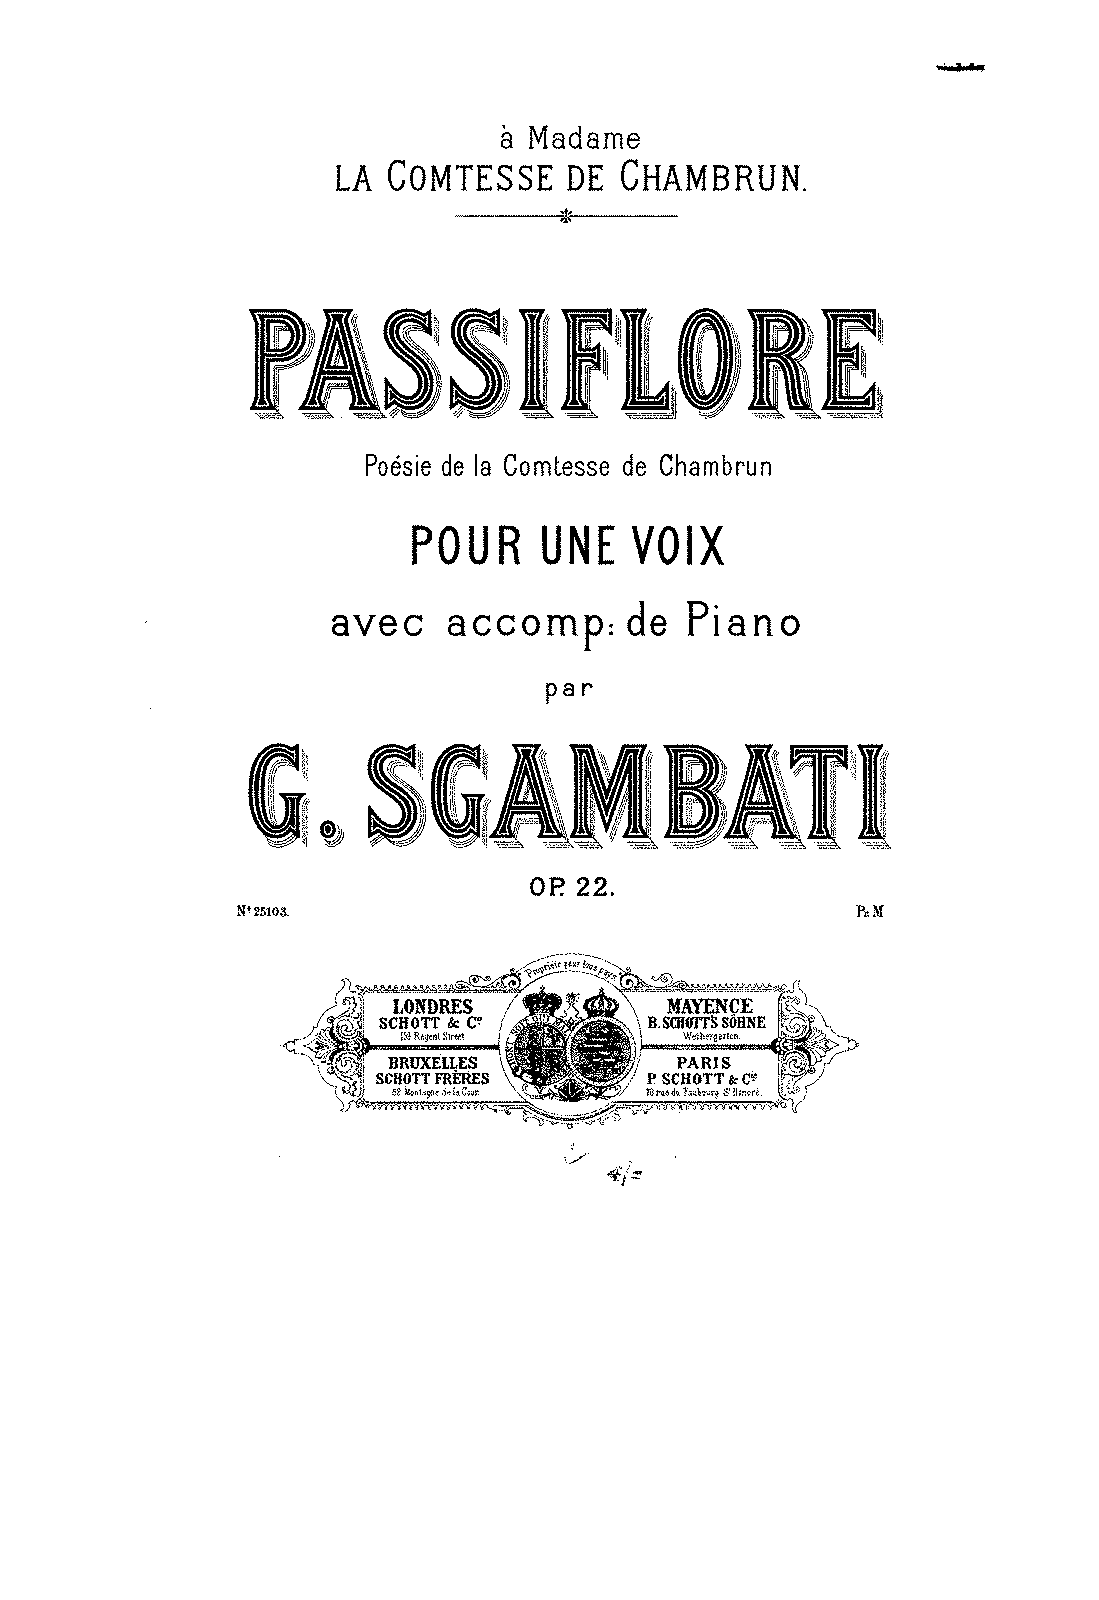 SIBLEY1802.16818.be74-39087012015055passiflore.pdf